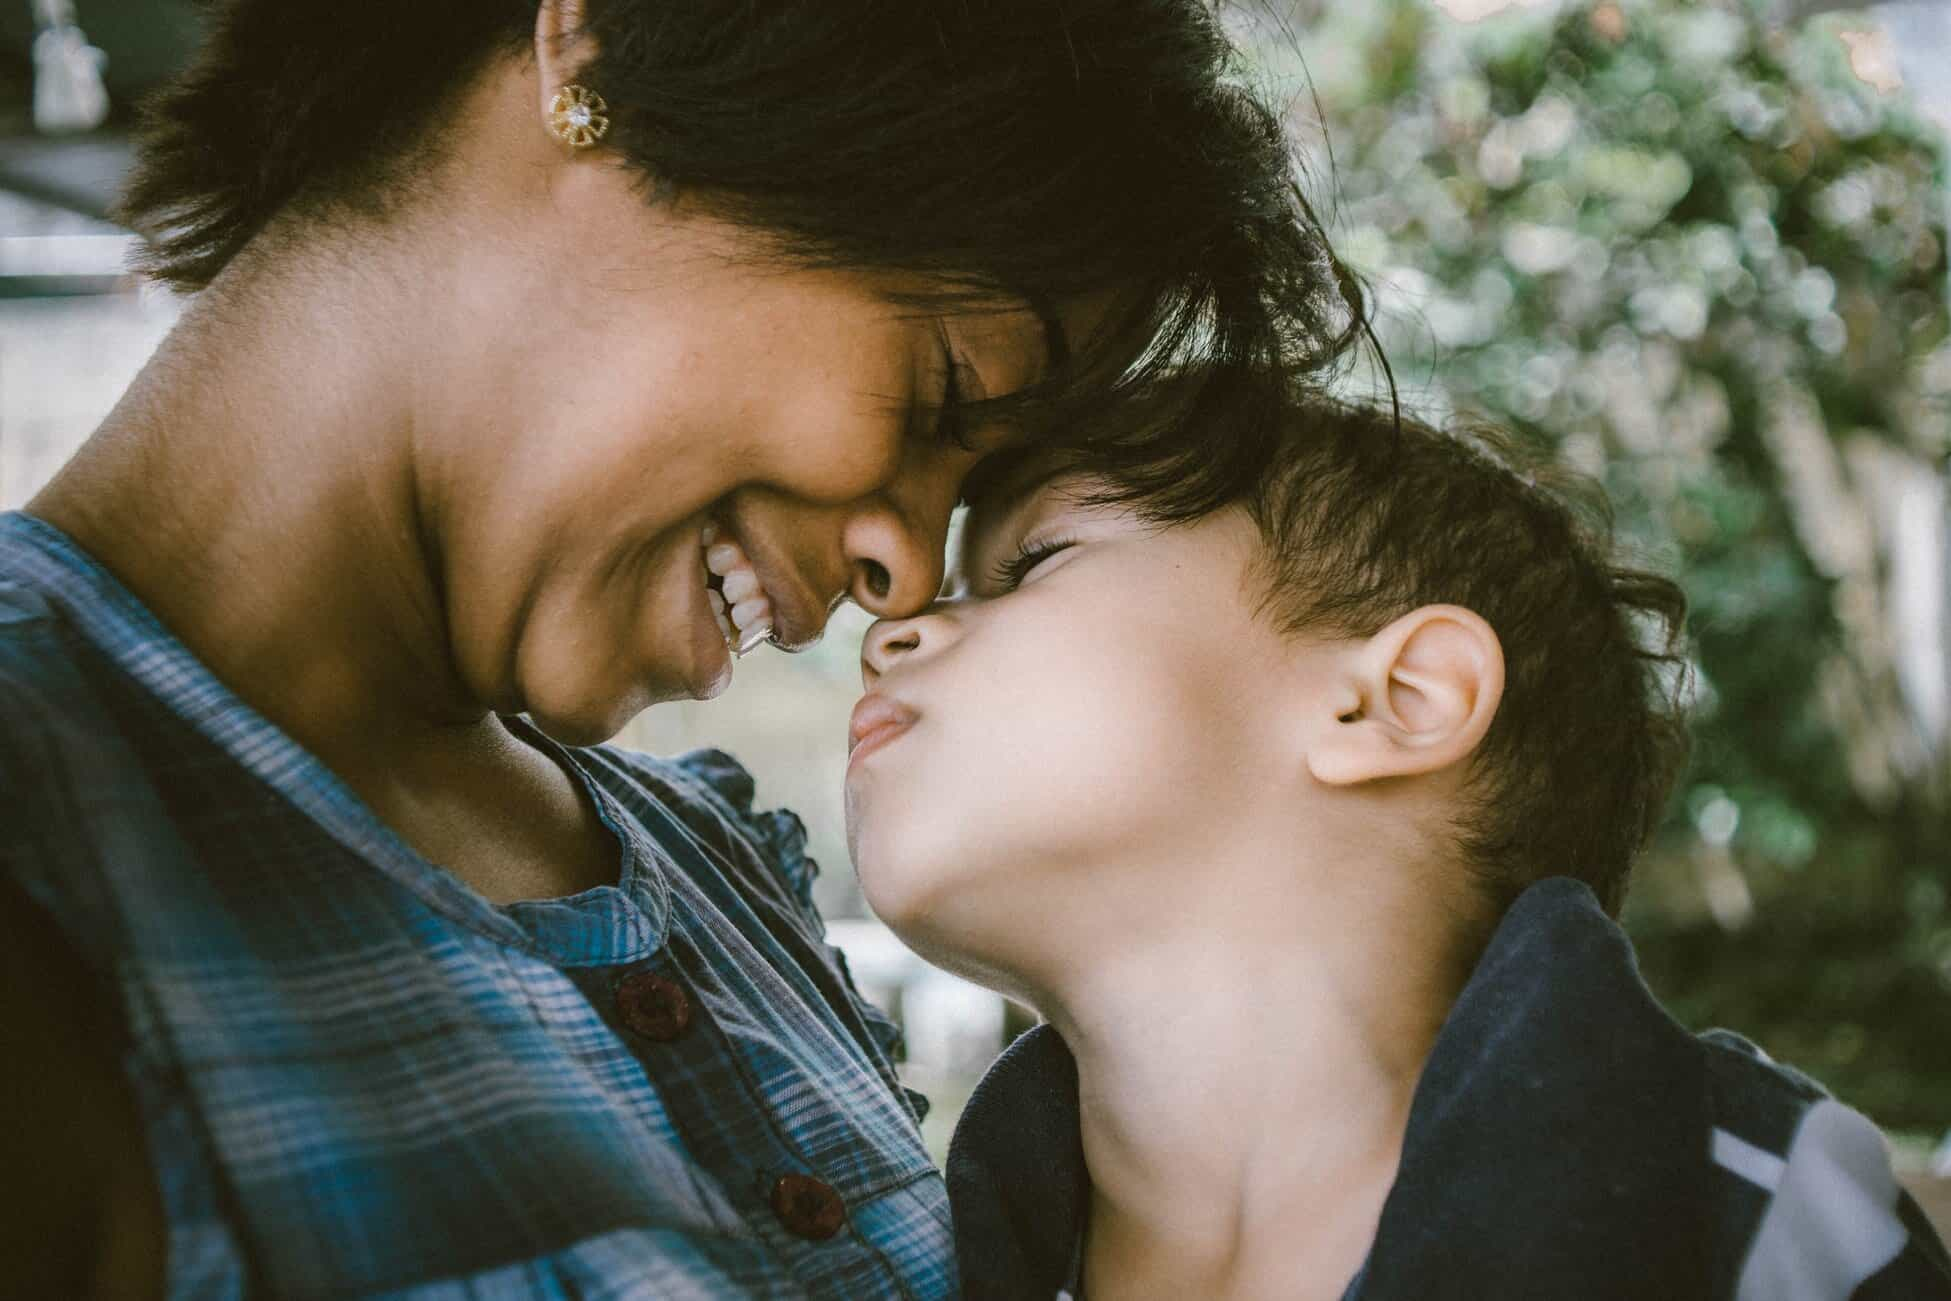 Mother smiling face-to-face with child for article about term life insurance